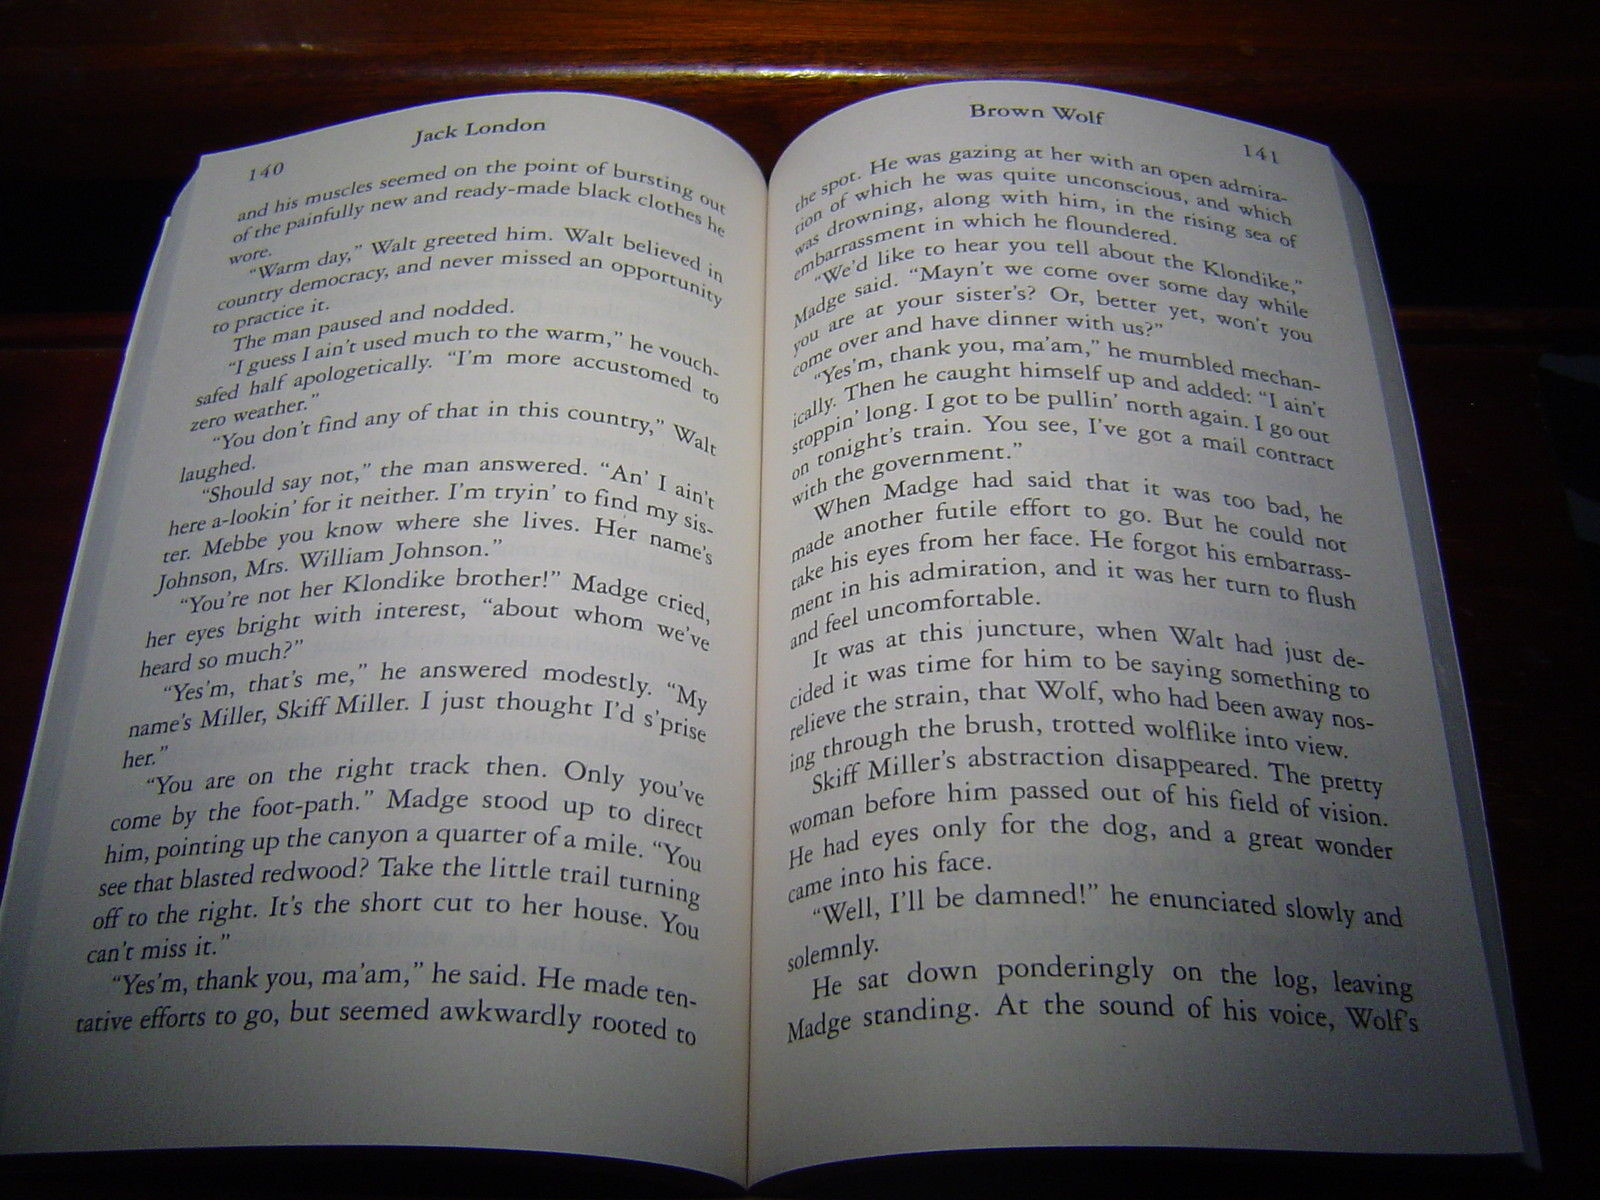 LARGE PRINT The Collected Stories of Jack London (2000) image 3